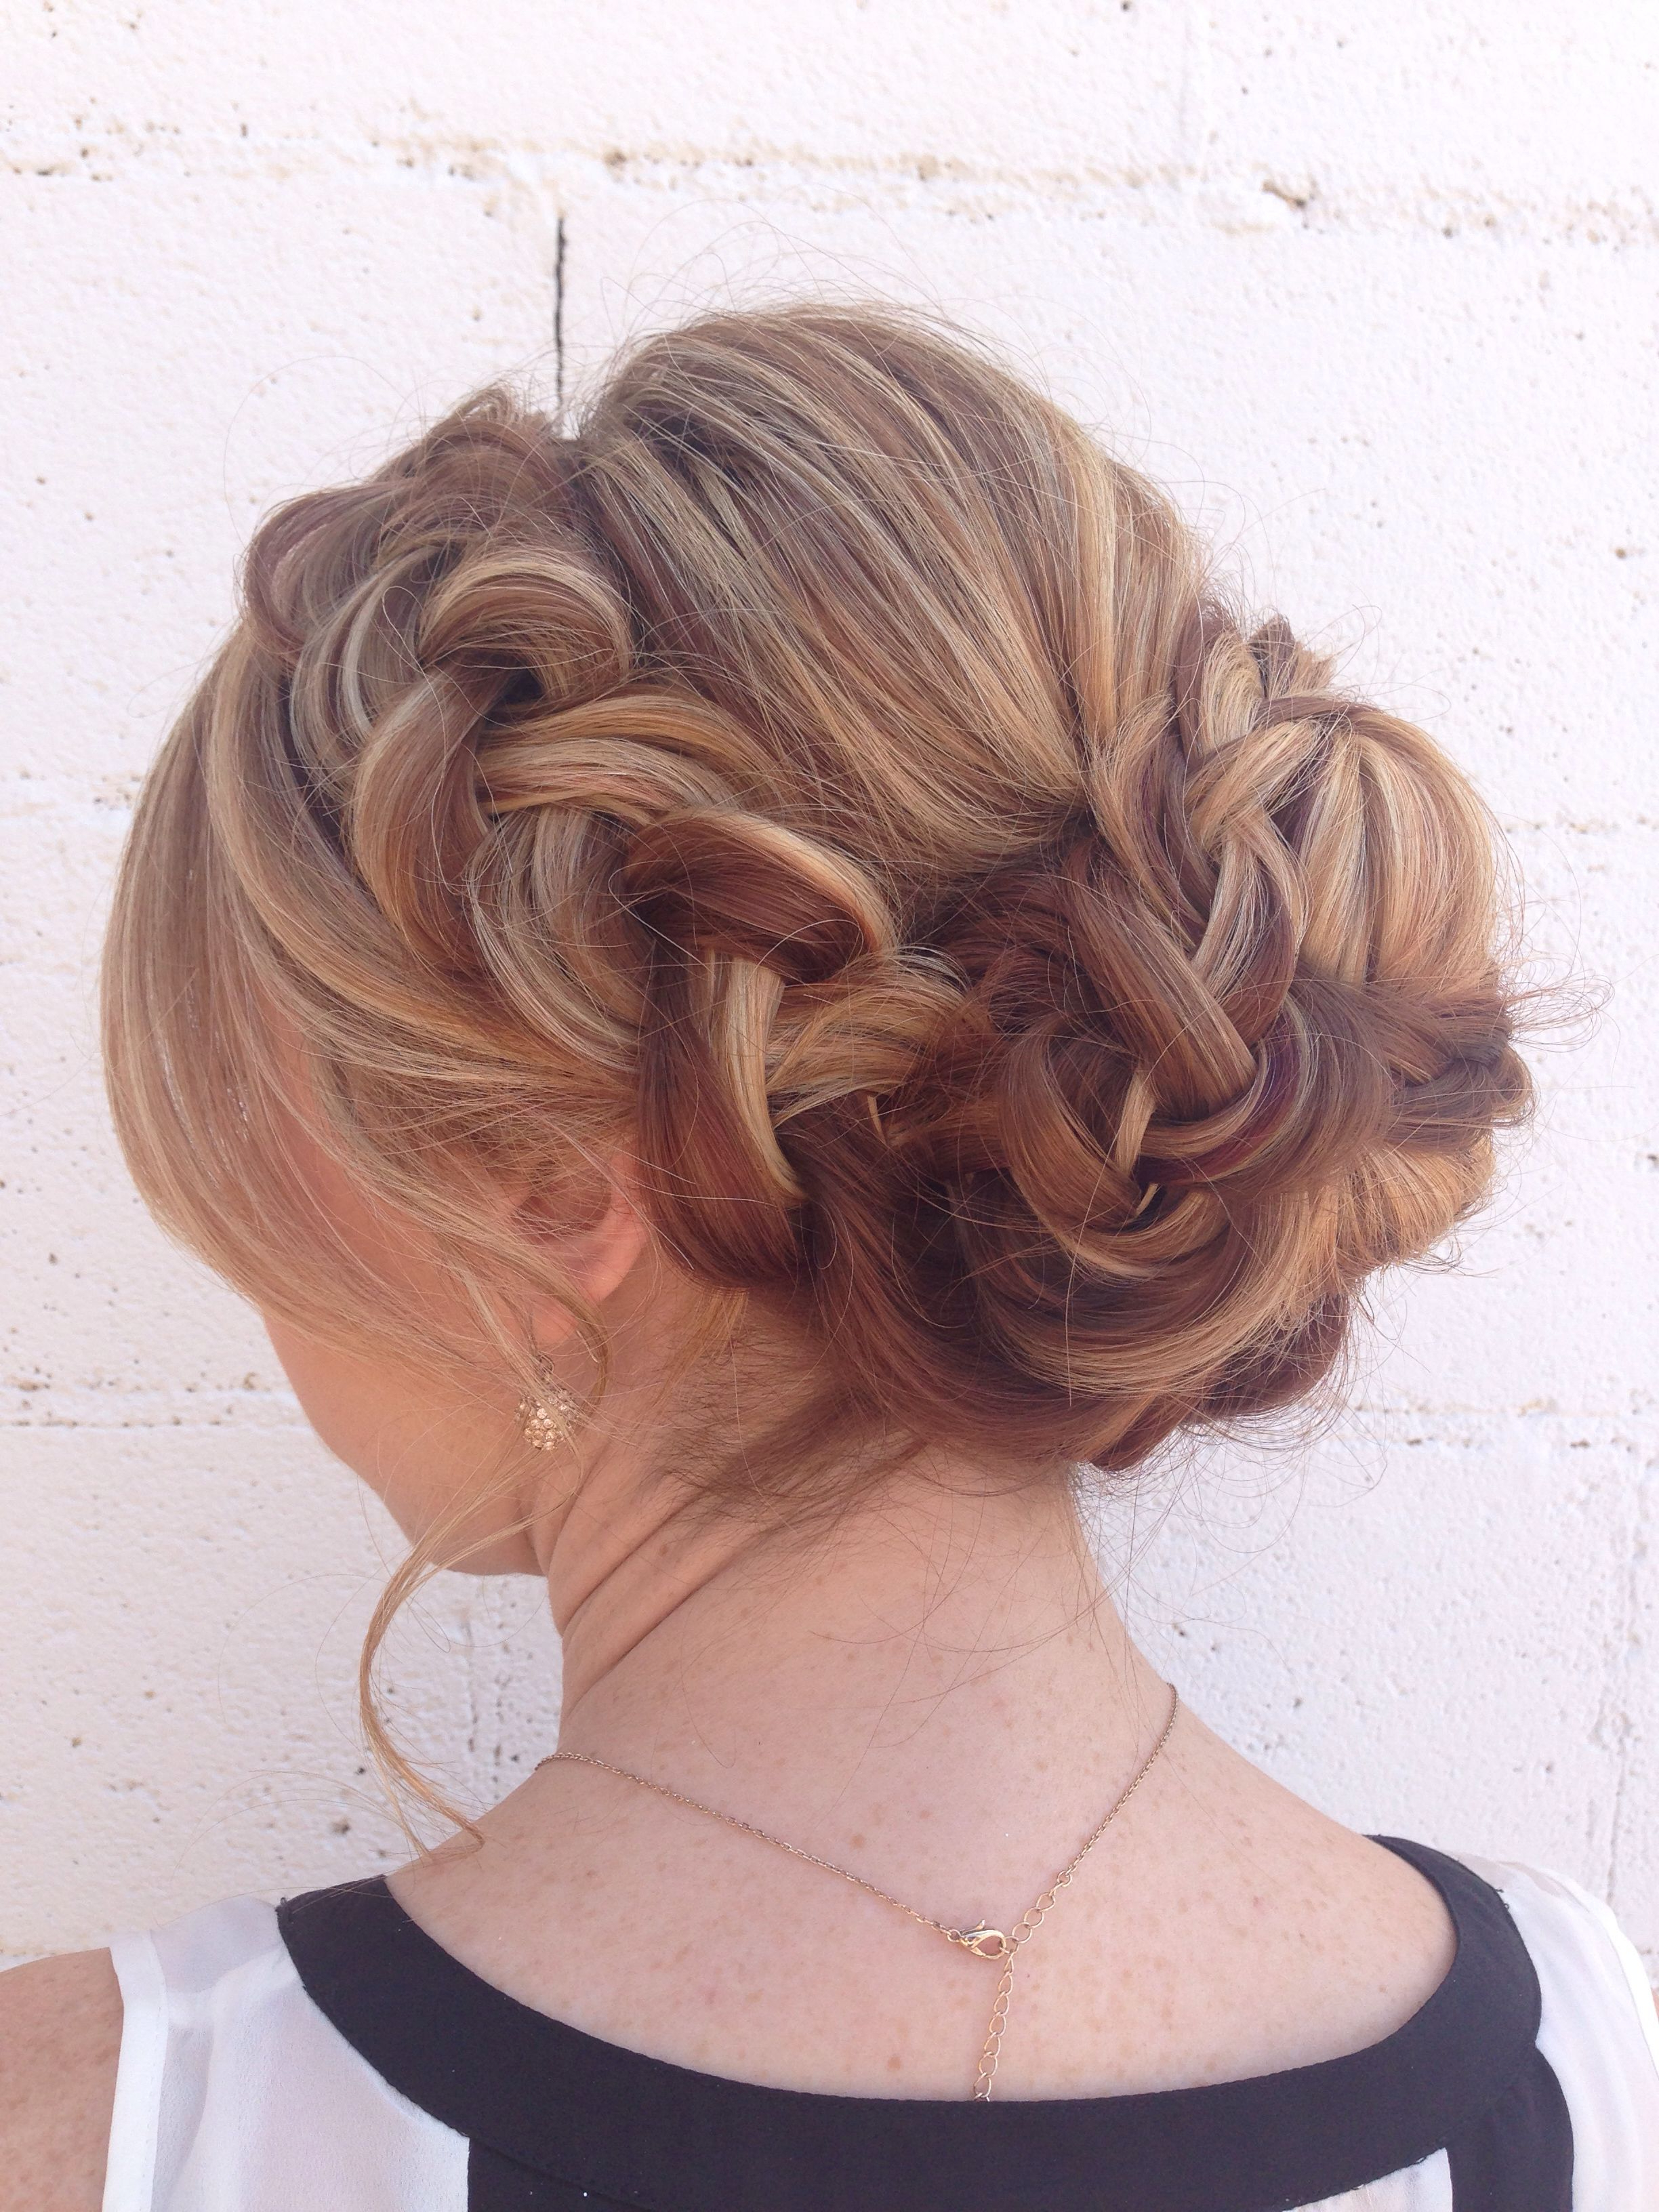 Current Classic Prom Updos With Thick Accent Braid In Soft, Braided Updo For Long, Thick Hair (View 5 of 20)